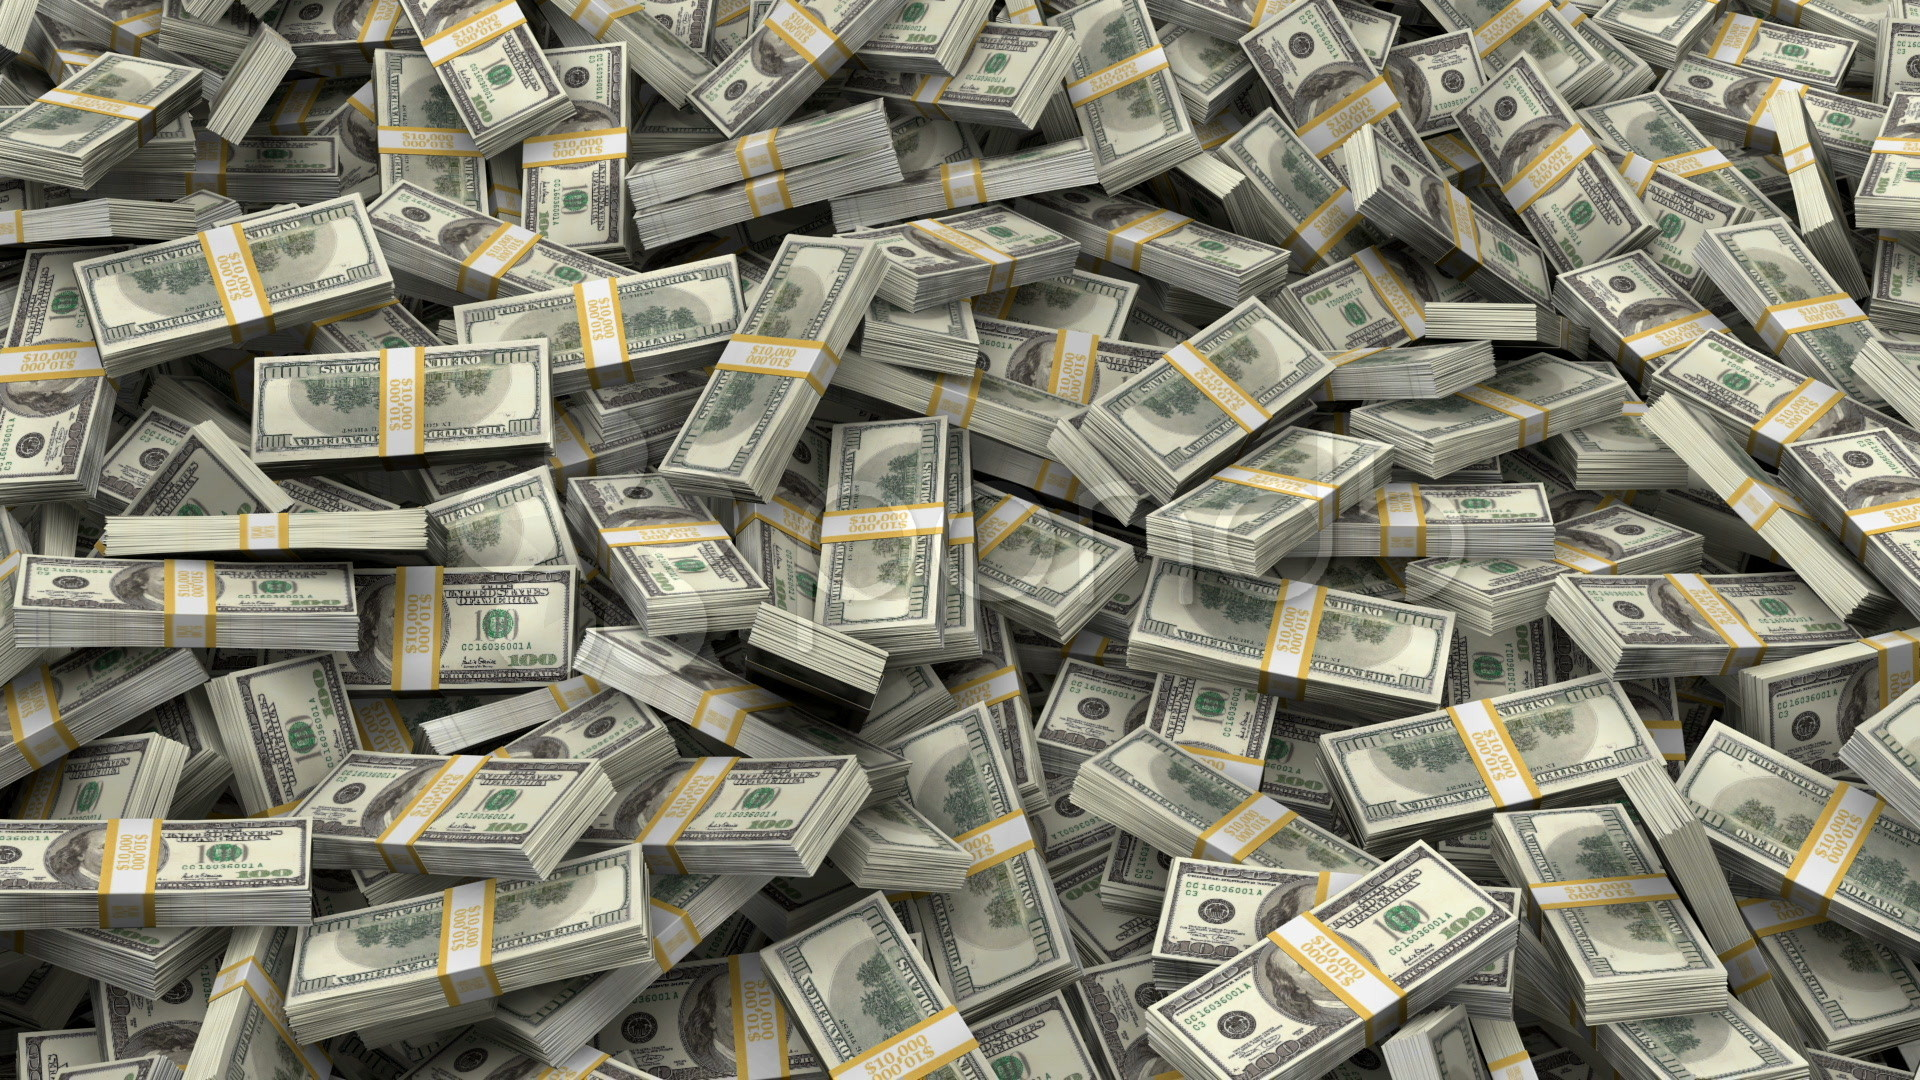 Stacks of Money Wallpaper            1920x1080 1920x1080 Go Back   Images For   Cash Stacks Wallpaper